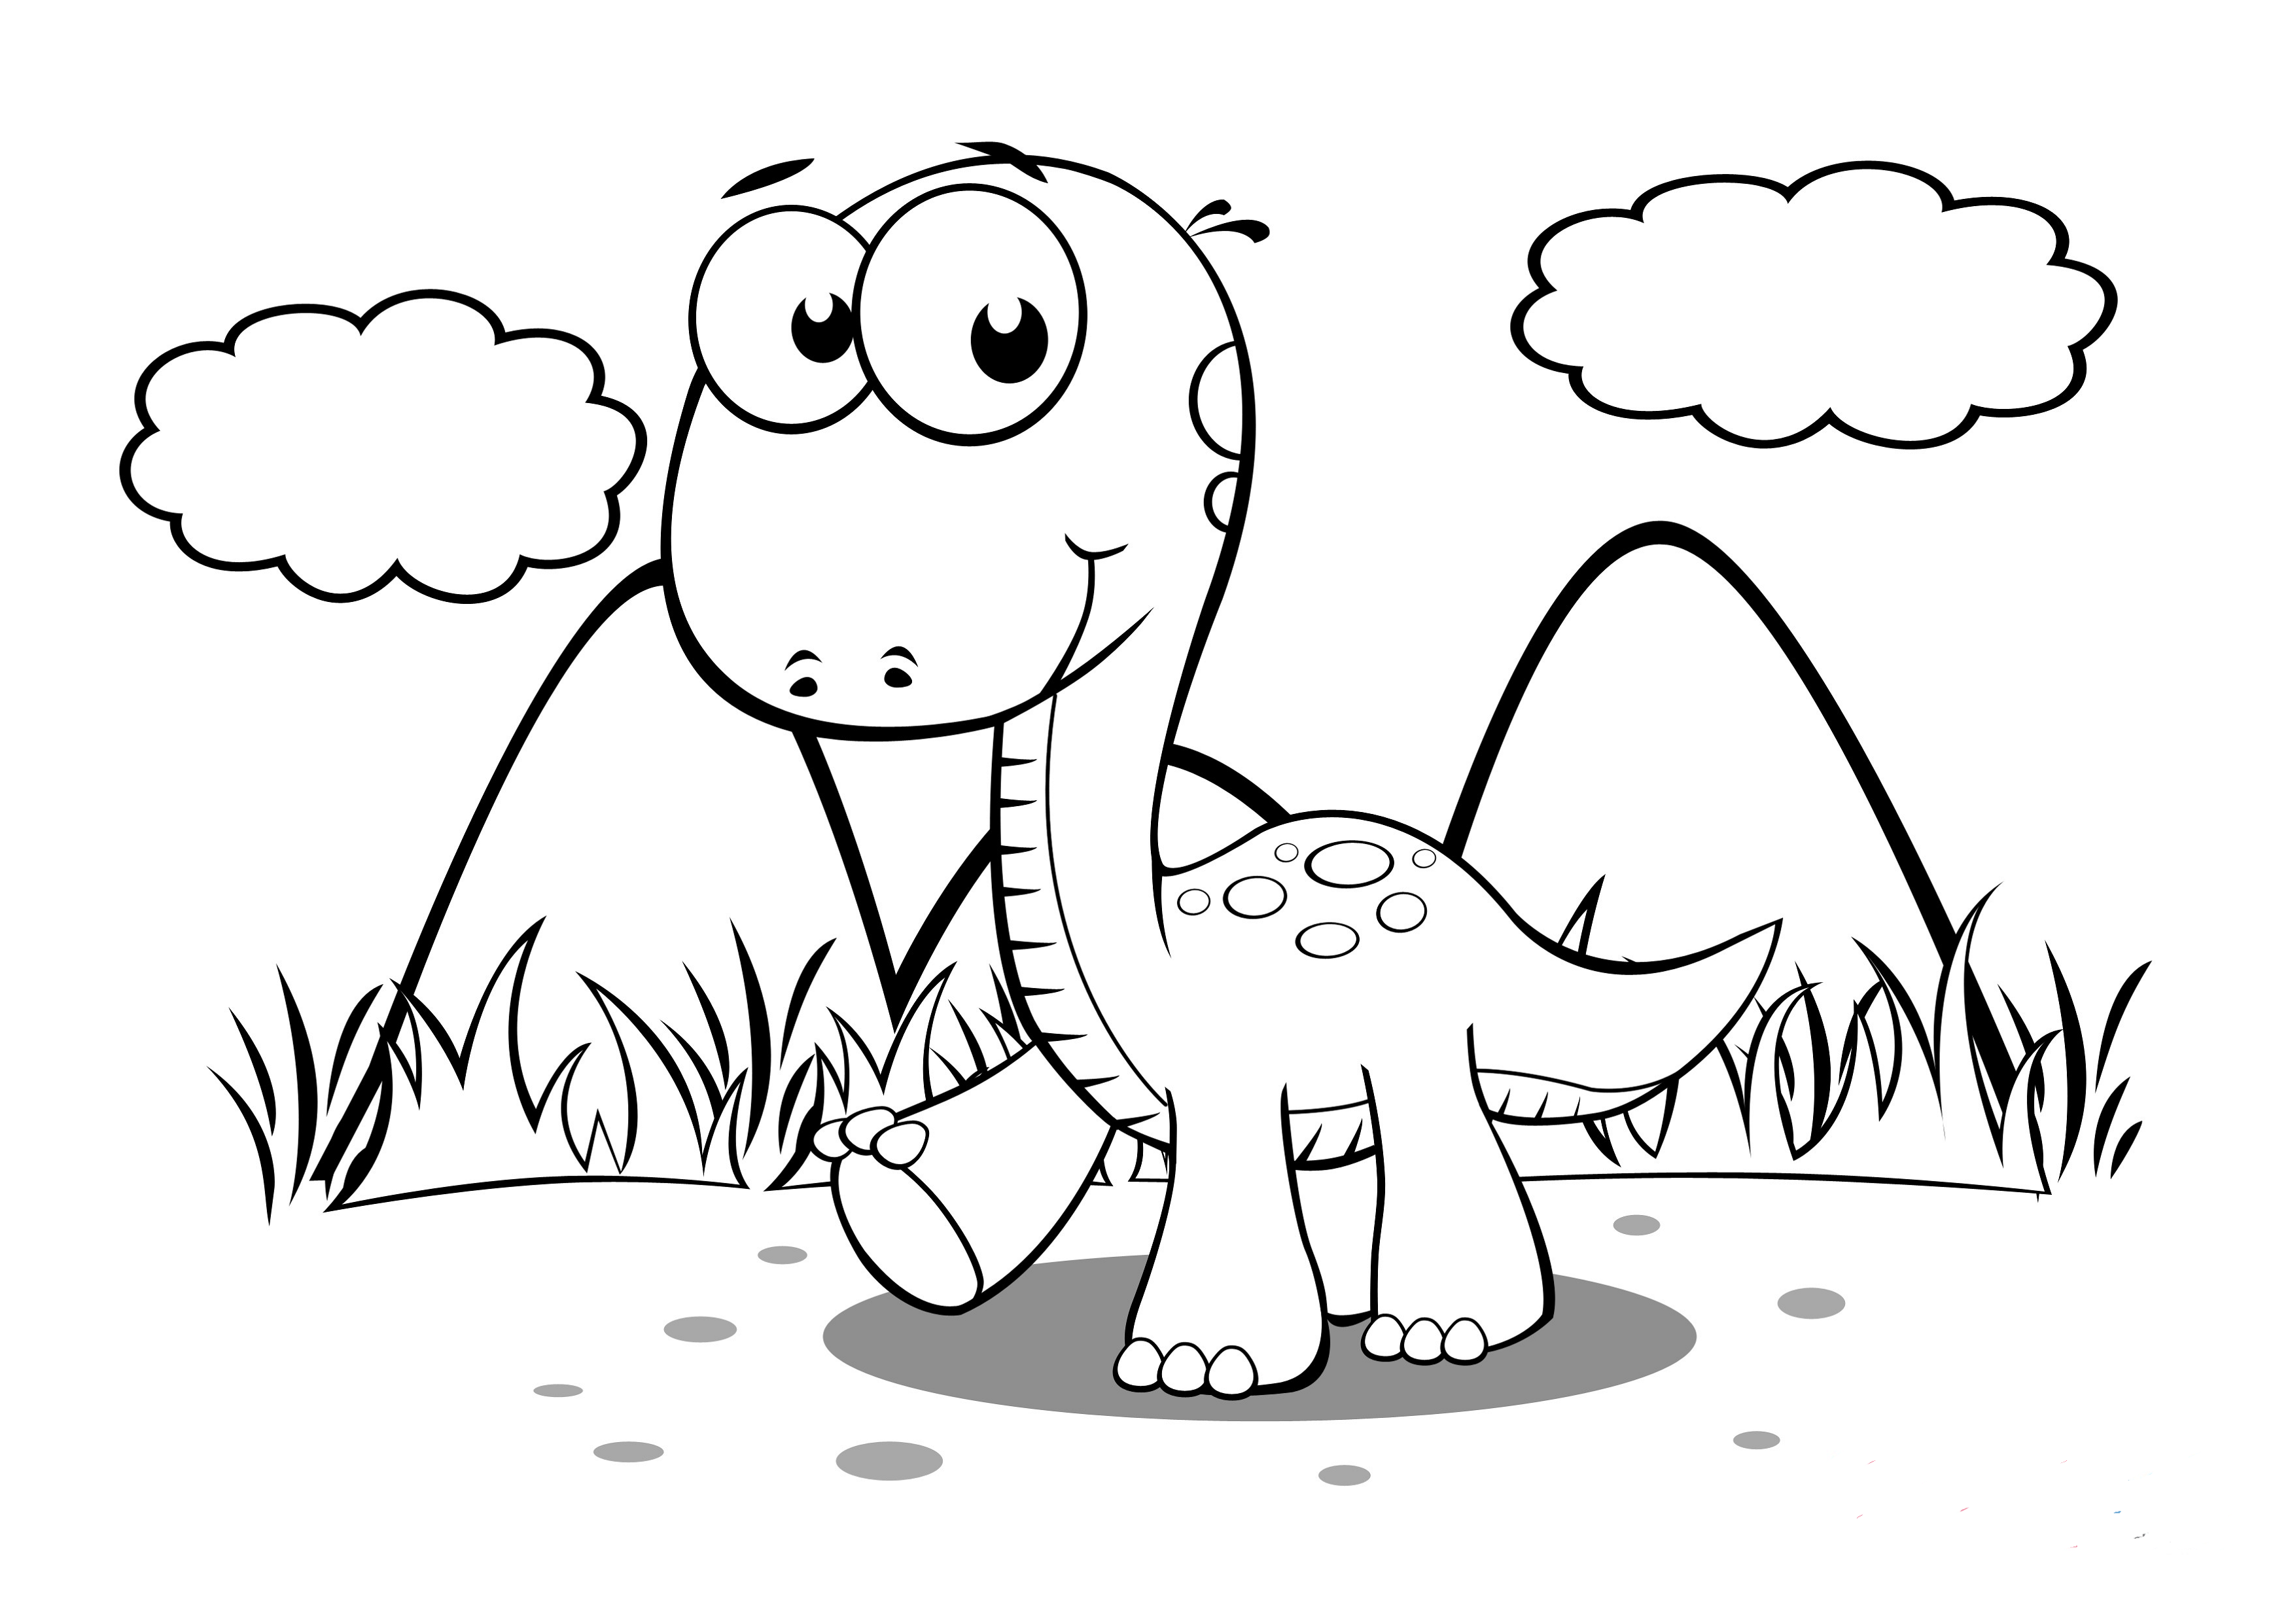 dinosaur coloring worksheets baby dinosaur coloring pages to download and print for free worksheets coloring dinosaur